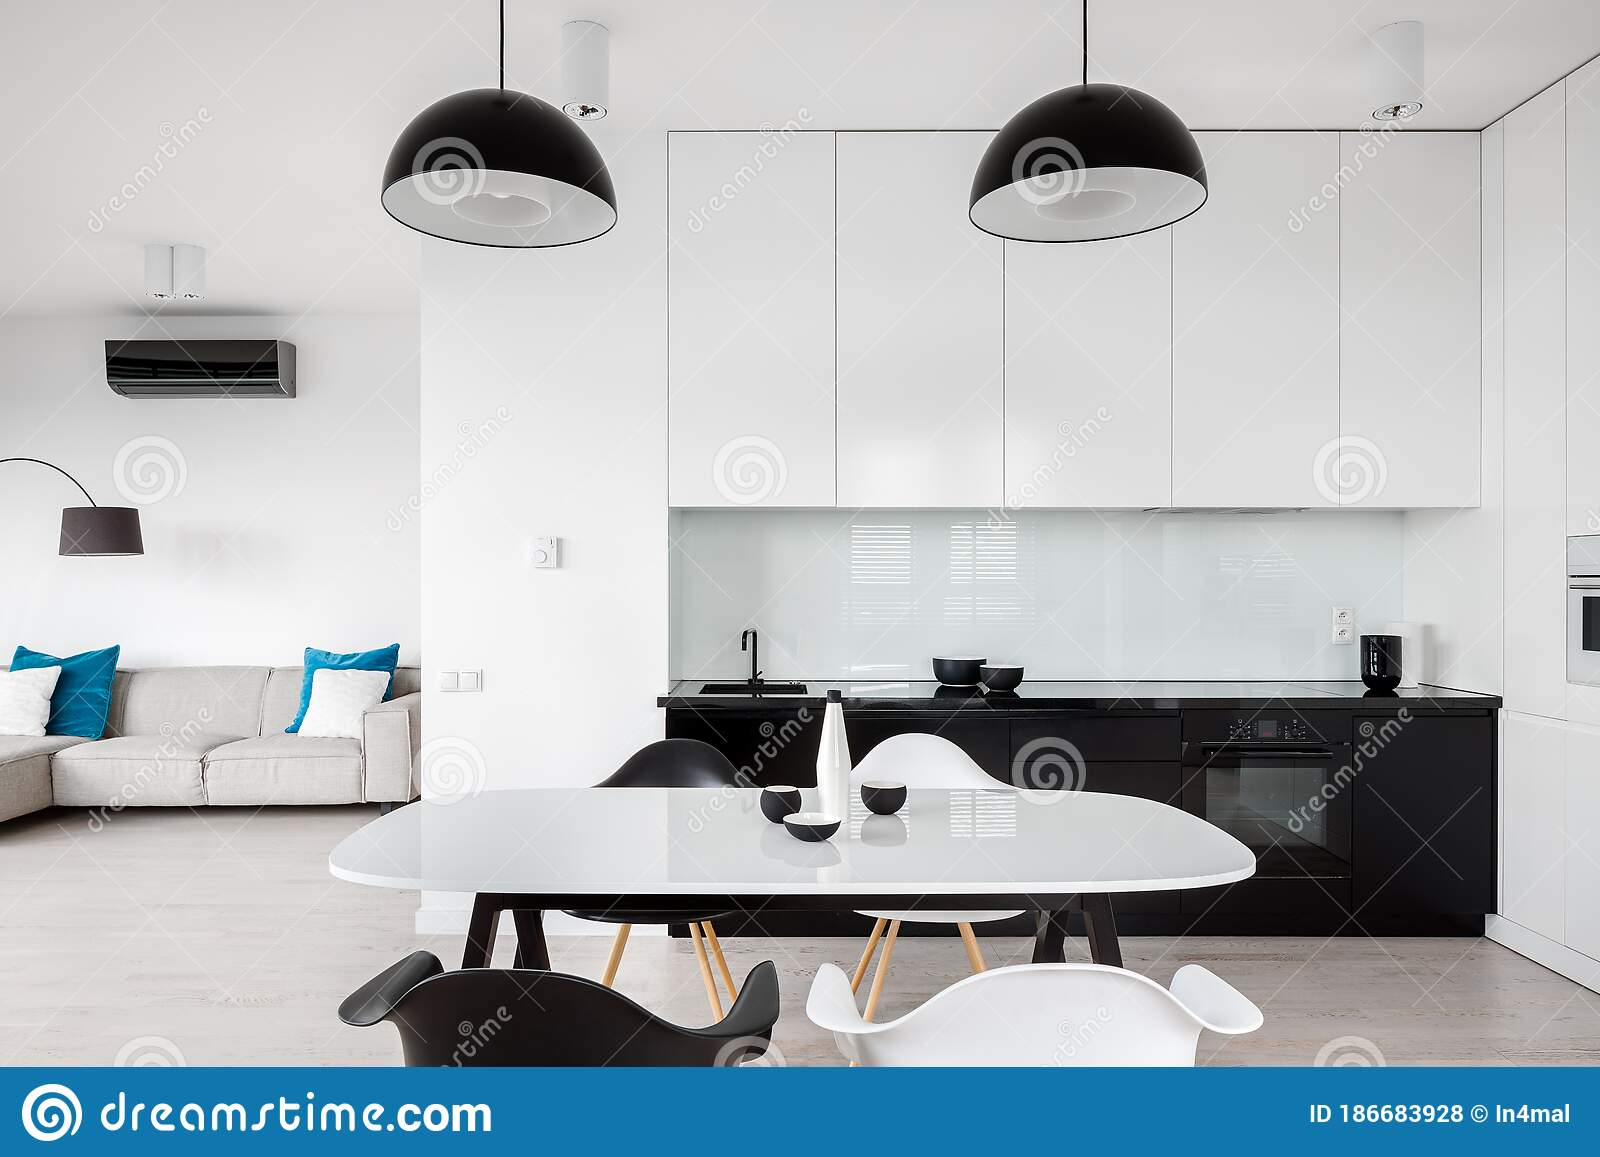 Picture of: White Dining Table In Open Kitchen Stock Photo Image Of Kitchen Indoor 186683928